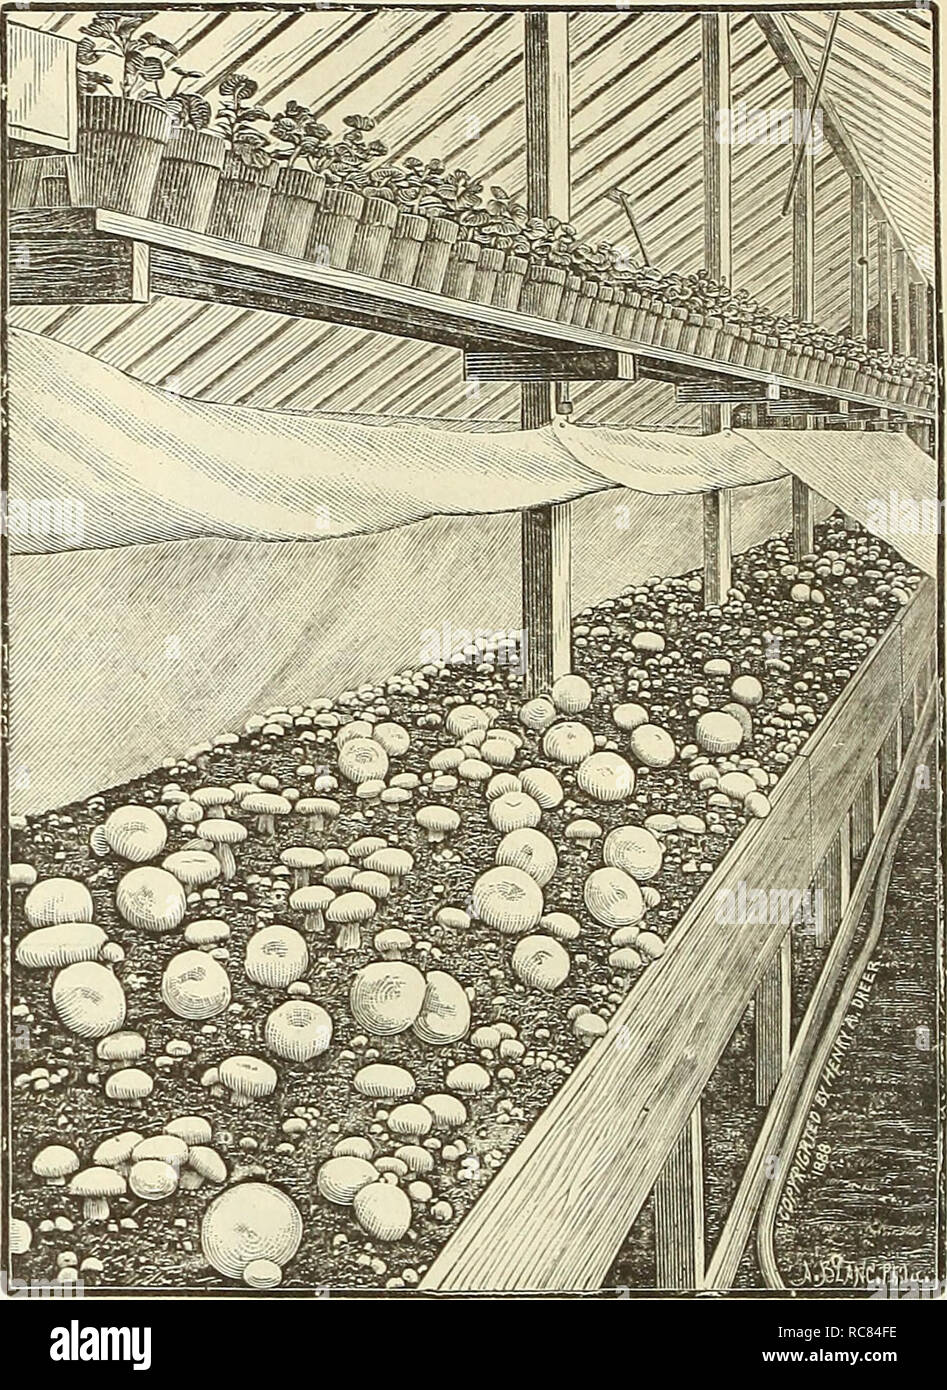 """. Dreer's garden calendar : 1891. Seeds Catalogs; Nursery stock Catalogs; Gardening Catalogs; Flowers Seeds Catalogs; Fruit Seeds Catalogs. 28 DREER'S RELIABLE SEEDS Mu5Kroom5. Champignonhrot, Ger. Champignon, Fe. Seia 6 Muevas de Hongos, Sp. The cultivatiou of this nutritious escu- lent is a vei'V"""" simple matter and requires only ordinary intelligence and care. The materials needed are fresli horse manure, good soil and live s^pawn. Tlie manure sliould not be too short, as it does not combine the necessary qualities. Longstrawy litter, plentifully mixed with shor^ manure, maizes by far t - Stock Image"""